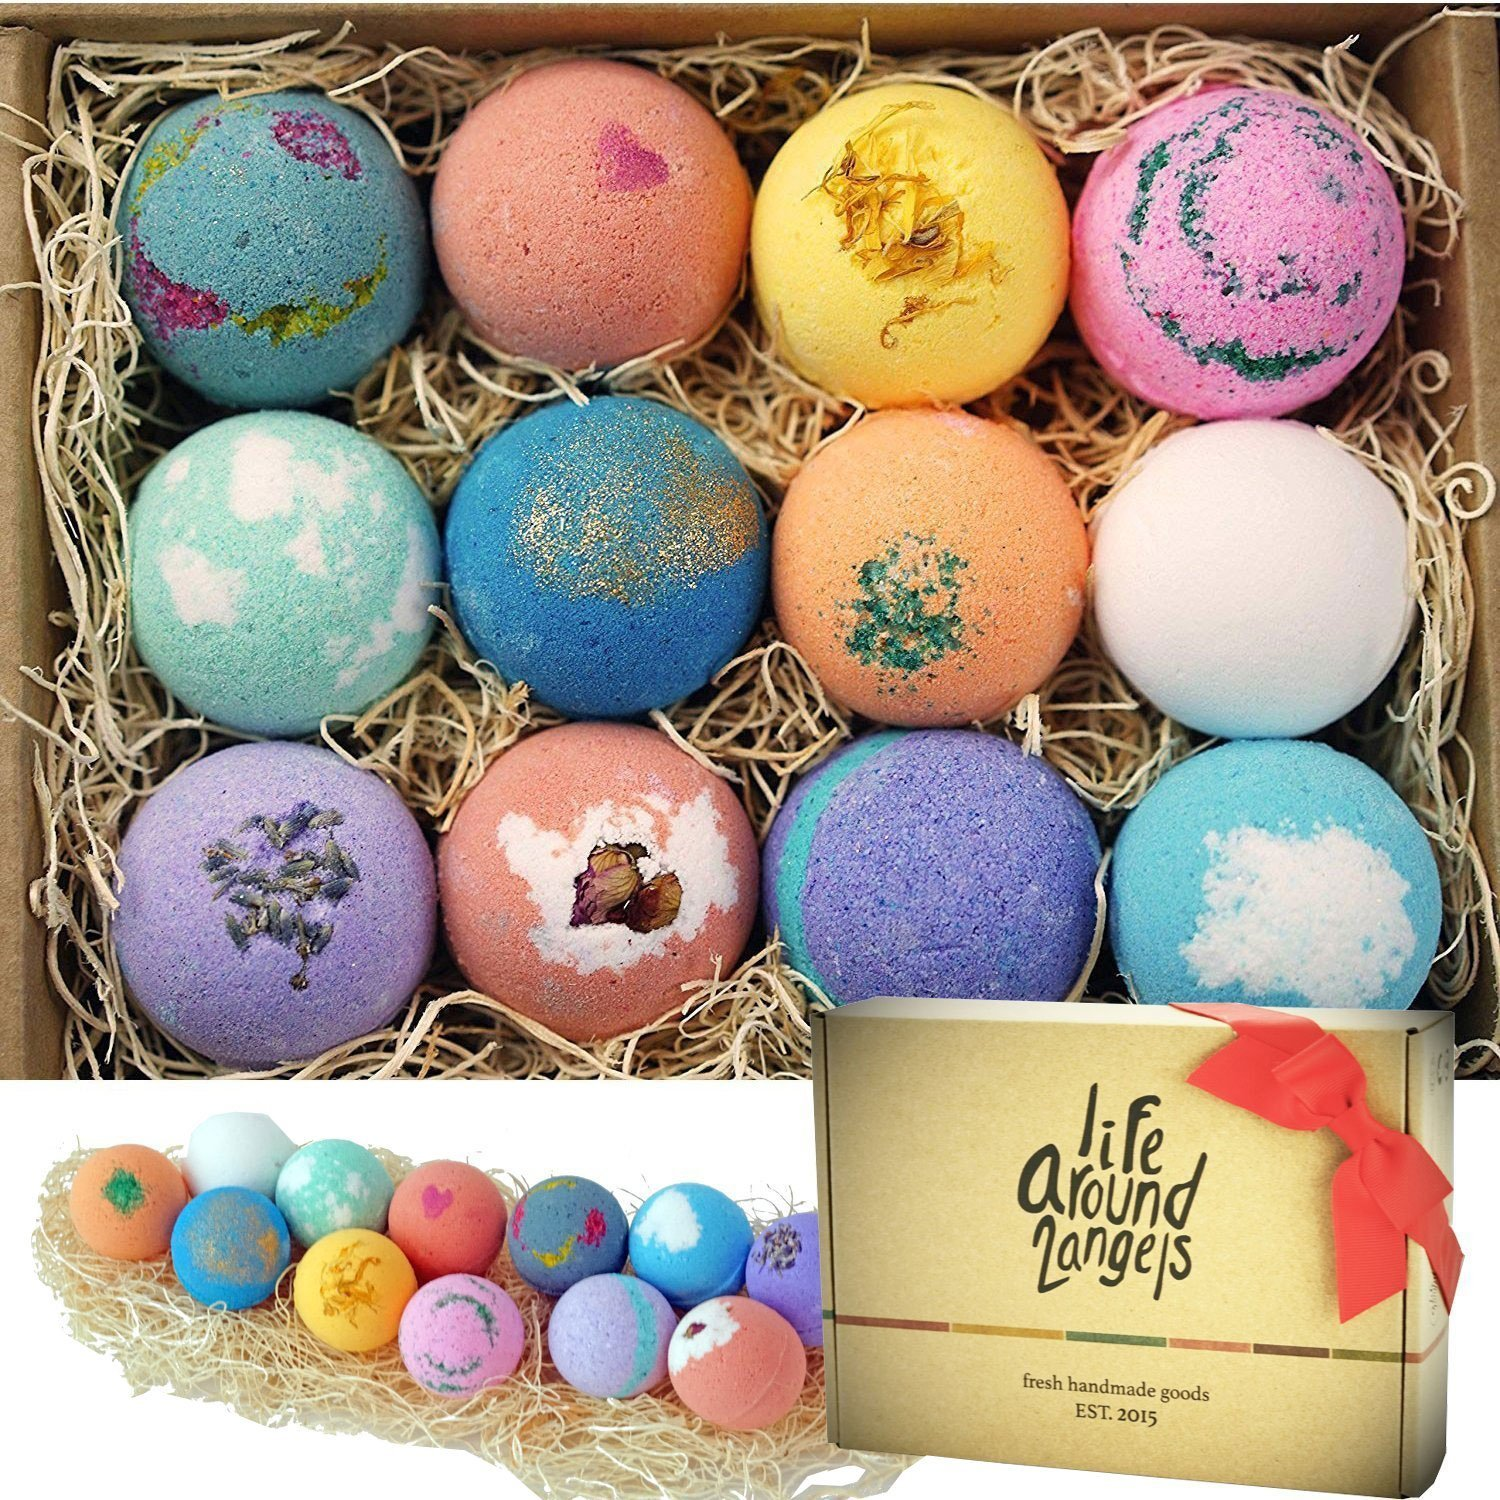 Charlotte amazon bath bomb valentines day gifts charlotte stories charlotte amazon bath bomb valentines day gifts negle Image collections